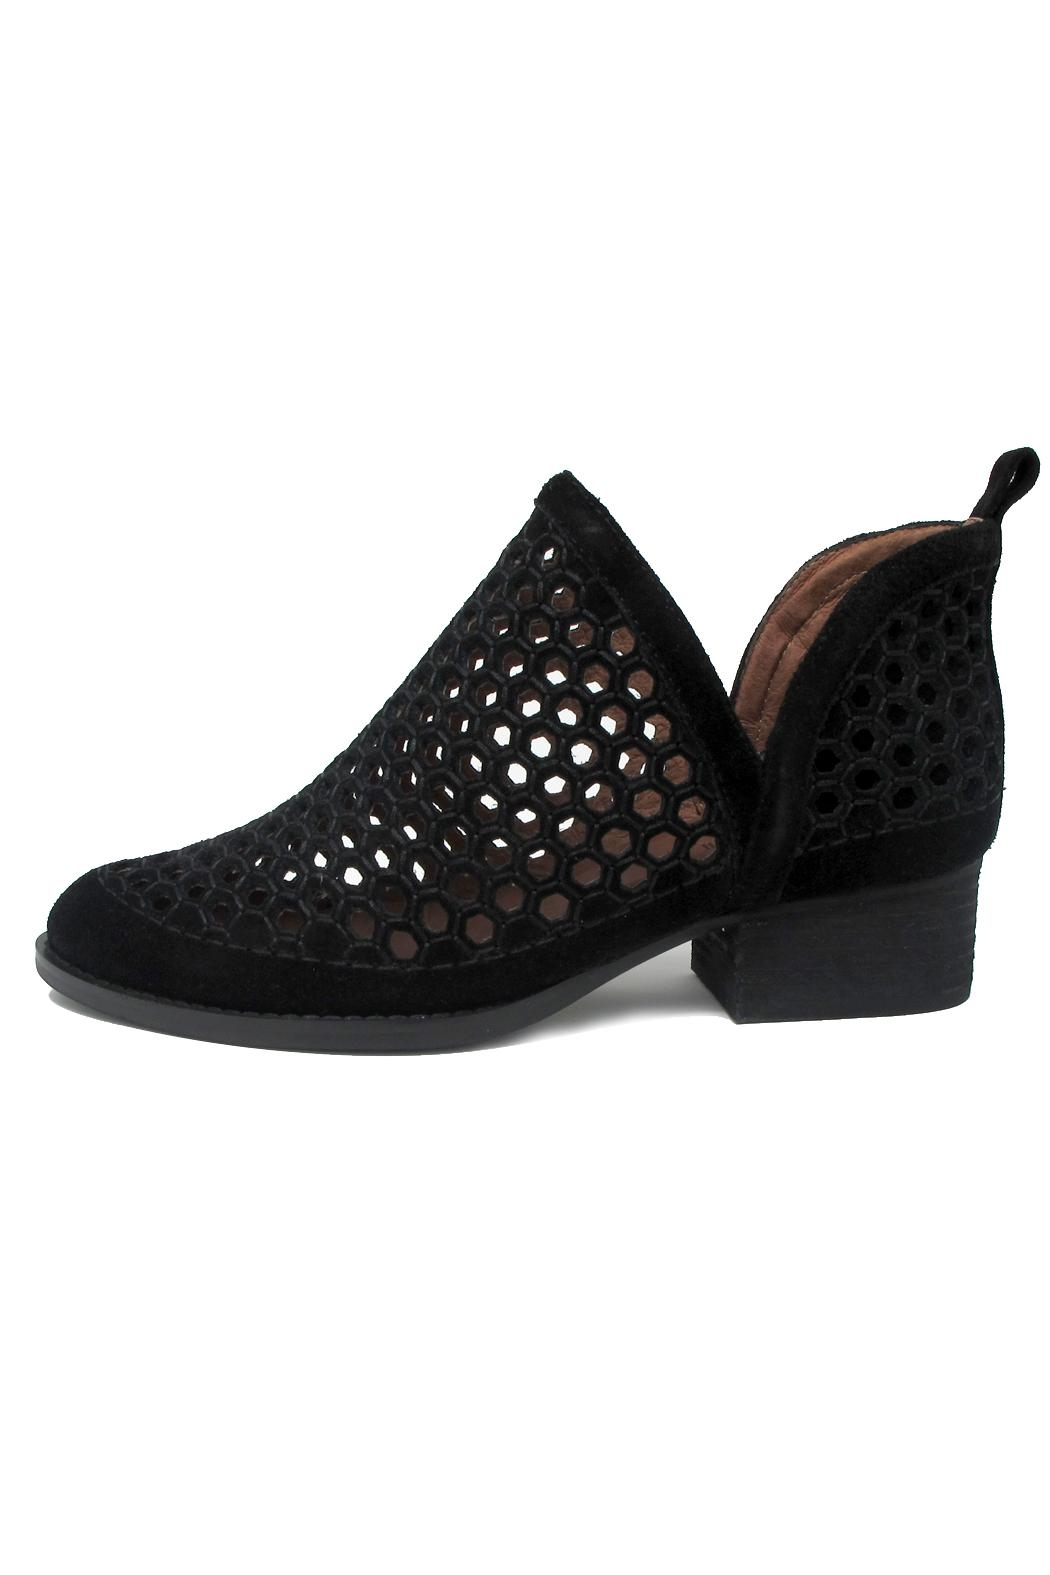 Jeffrey Campbell Black Bolton Bootie - Main Image